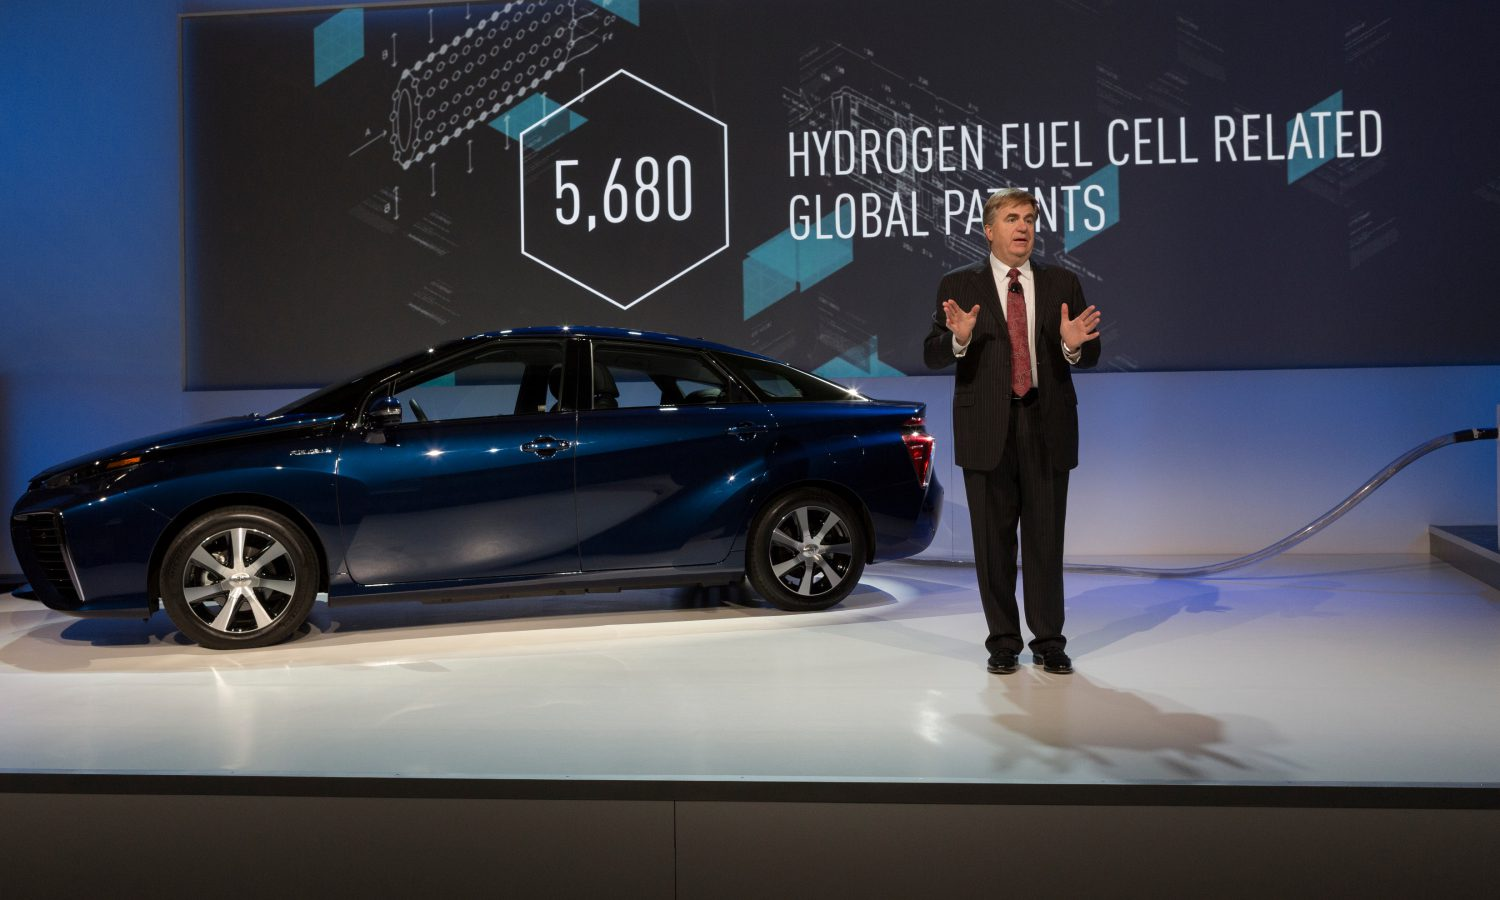 Toyota Opens the Door and Invites the Industry to the Hydrogen Future